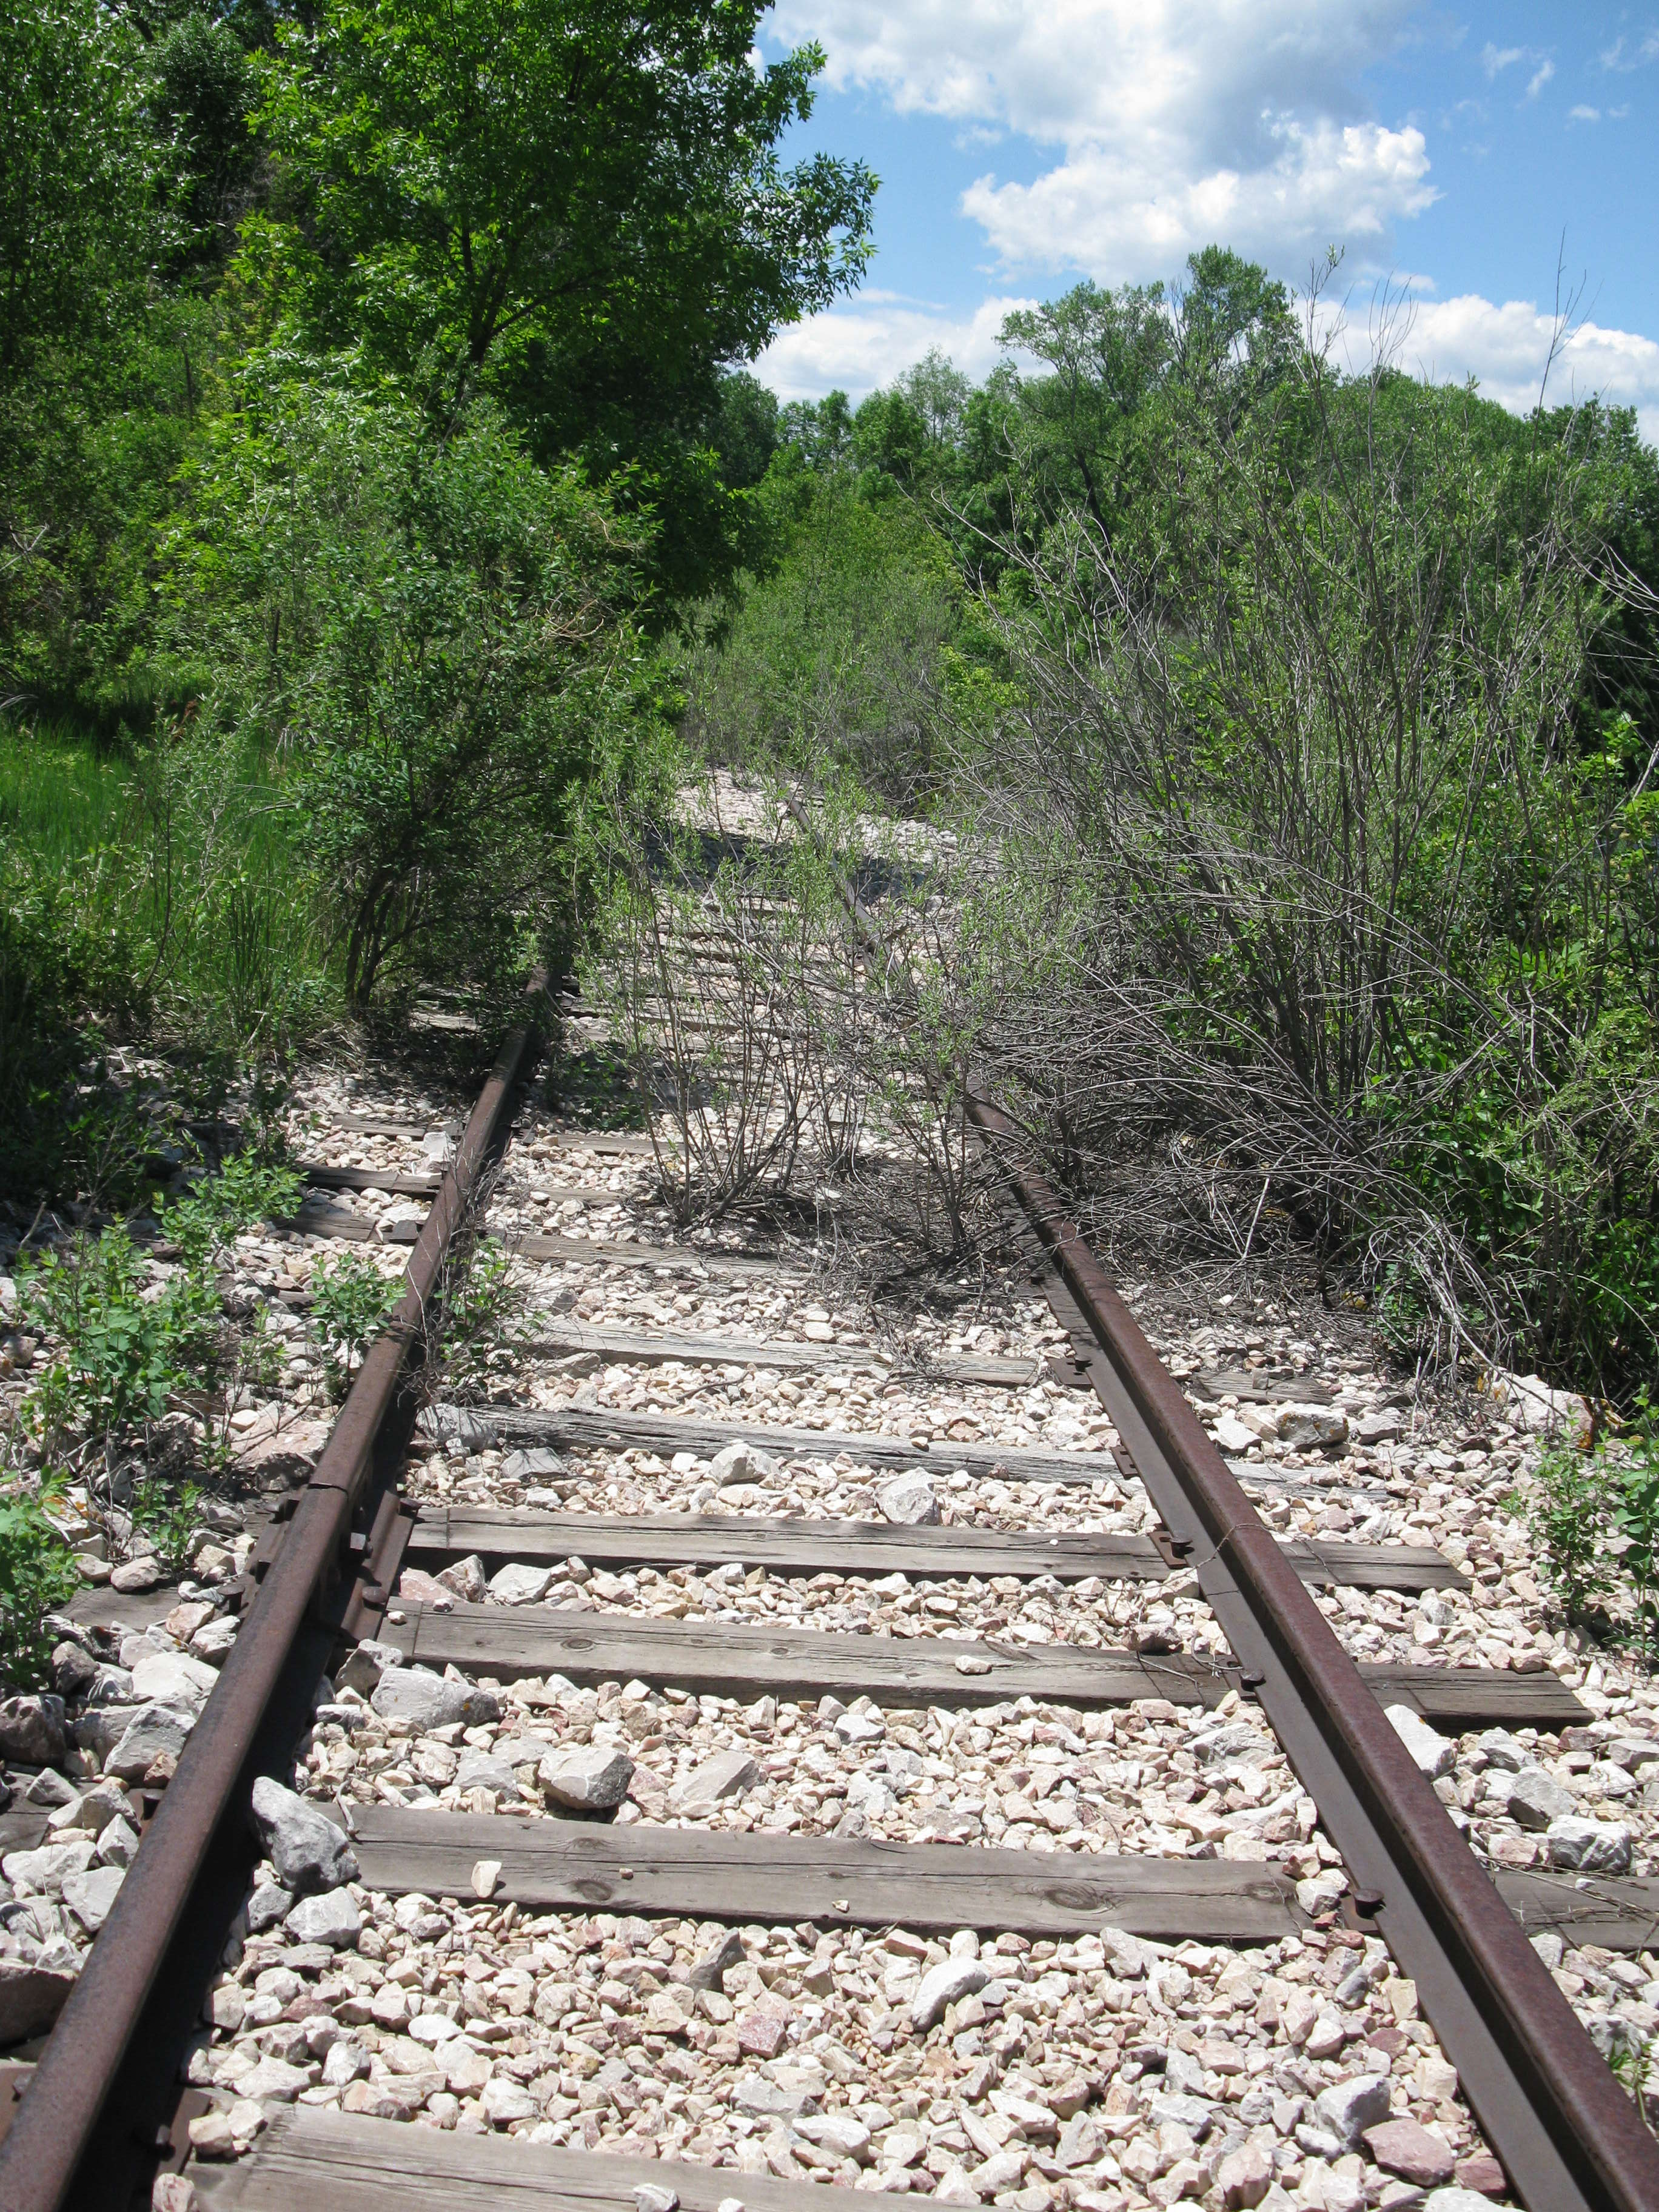 The Greeley Salt Lake & Pacific tracks run along the Poudre River, northwest of Fort Collins, CO.